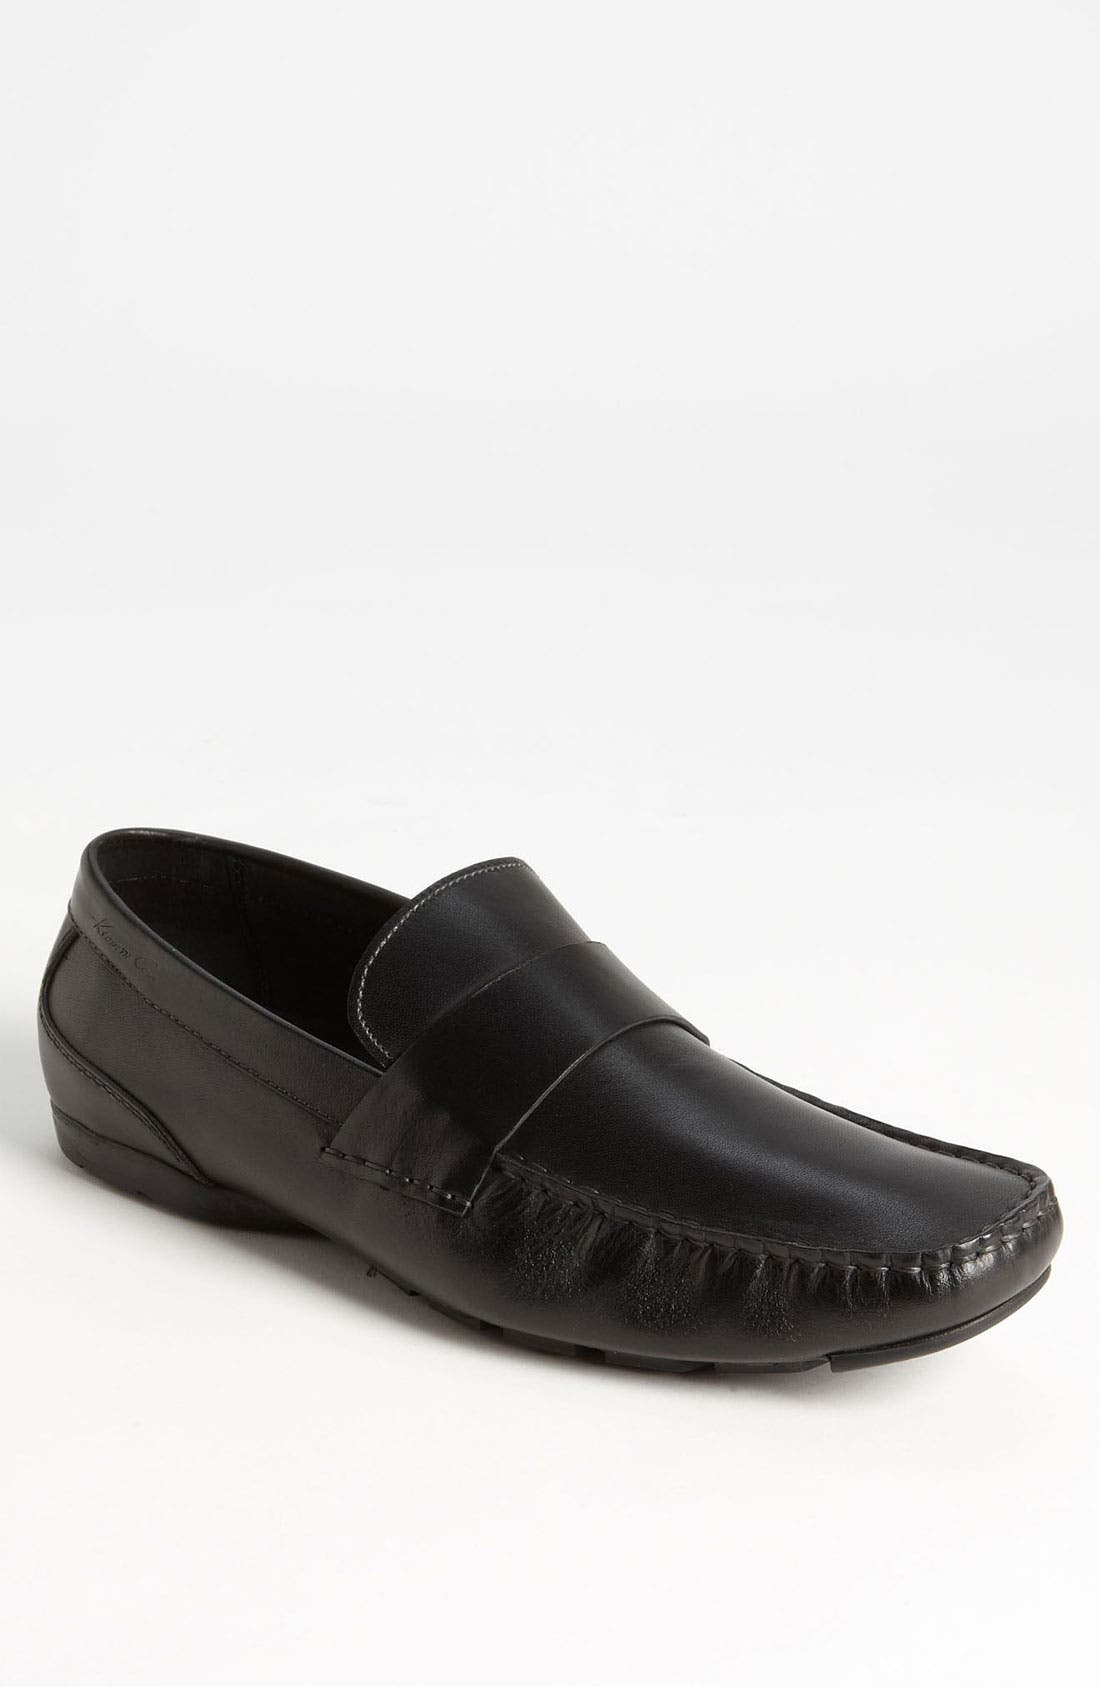 Alternate Image 1 Selected - Kenneth Cole New York 'Is-Land Jumper' Loafer